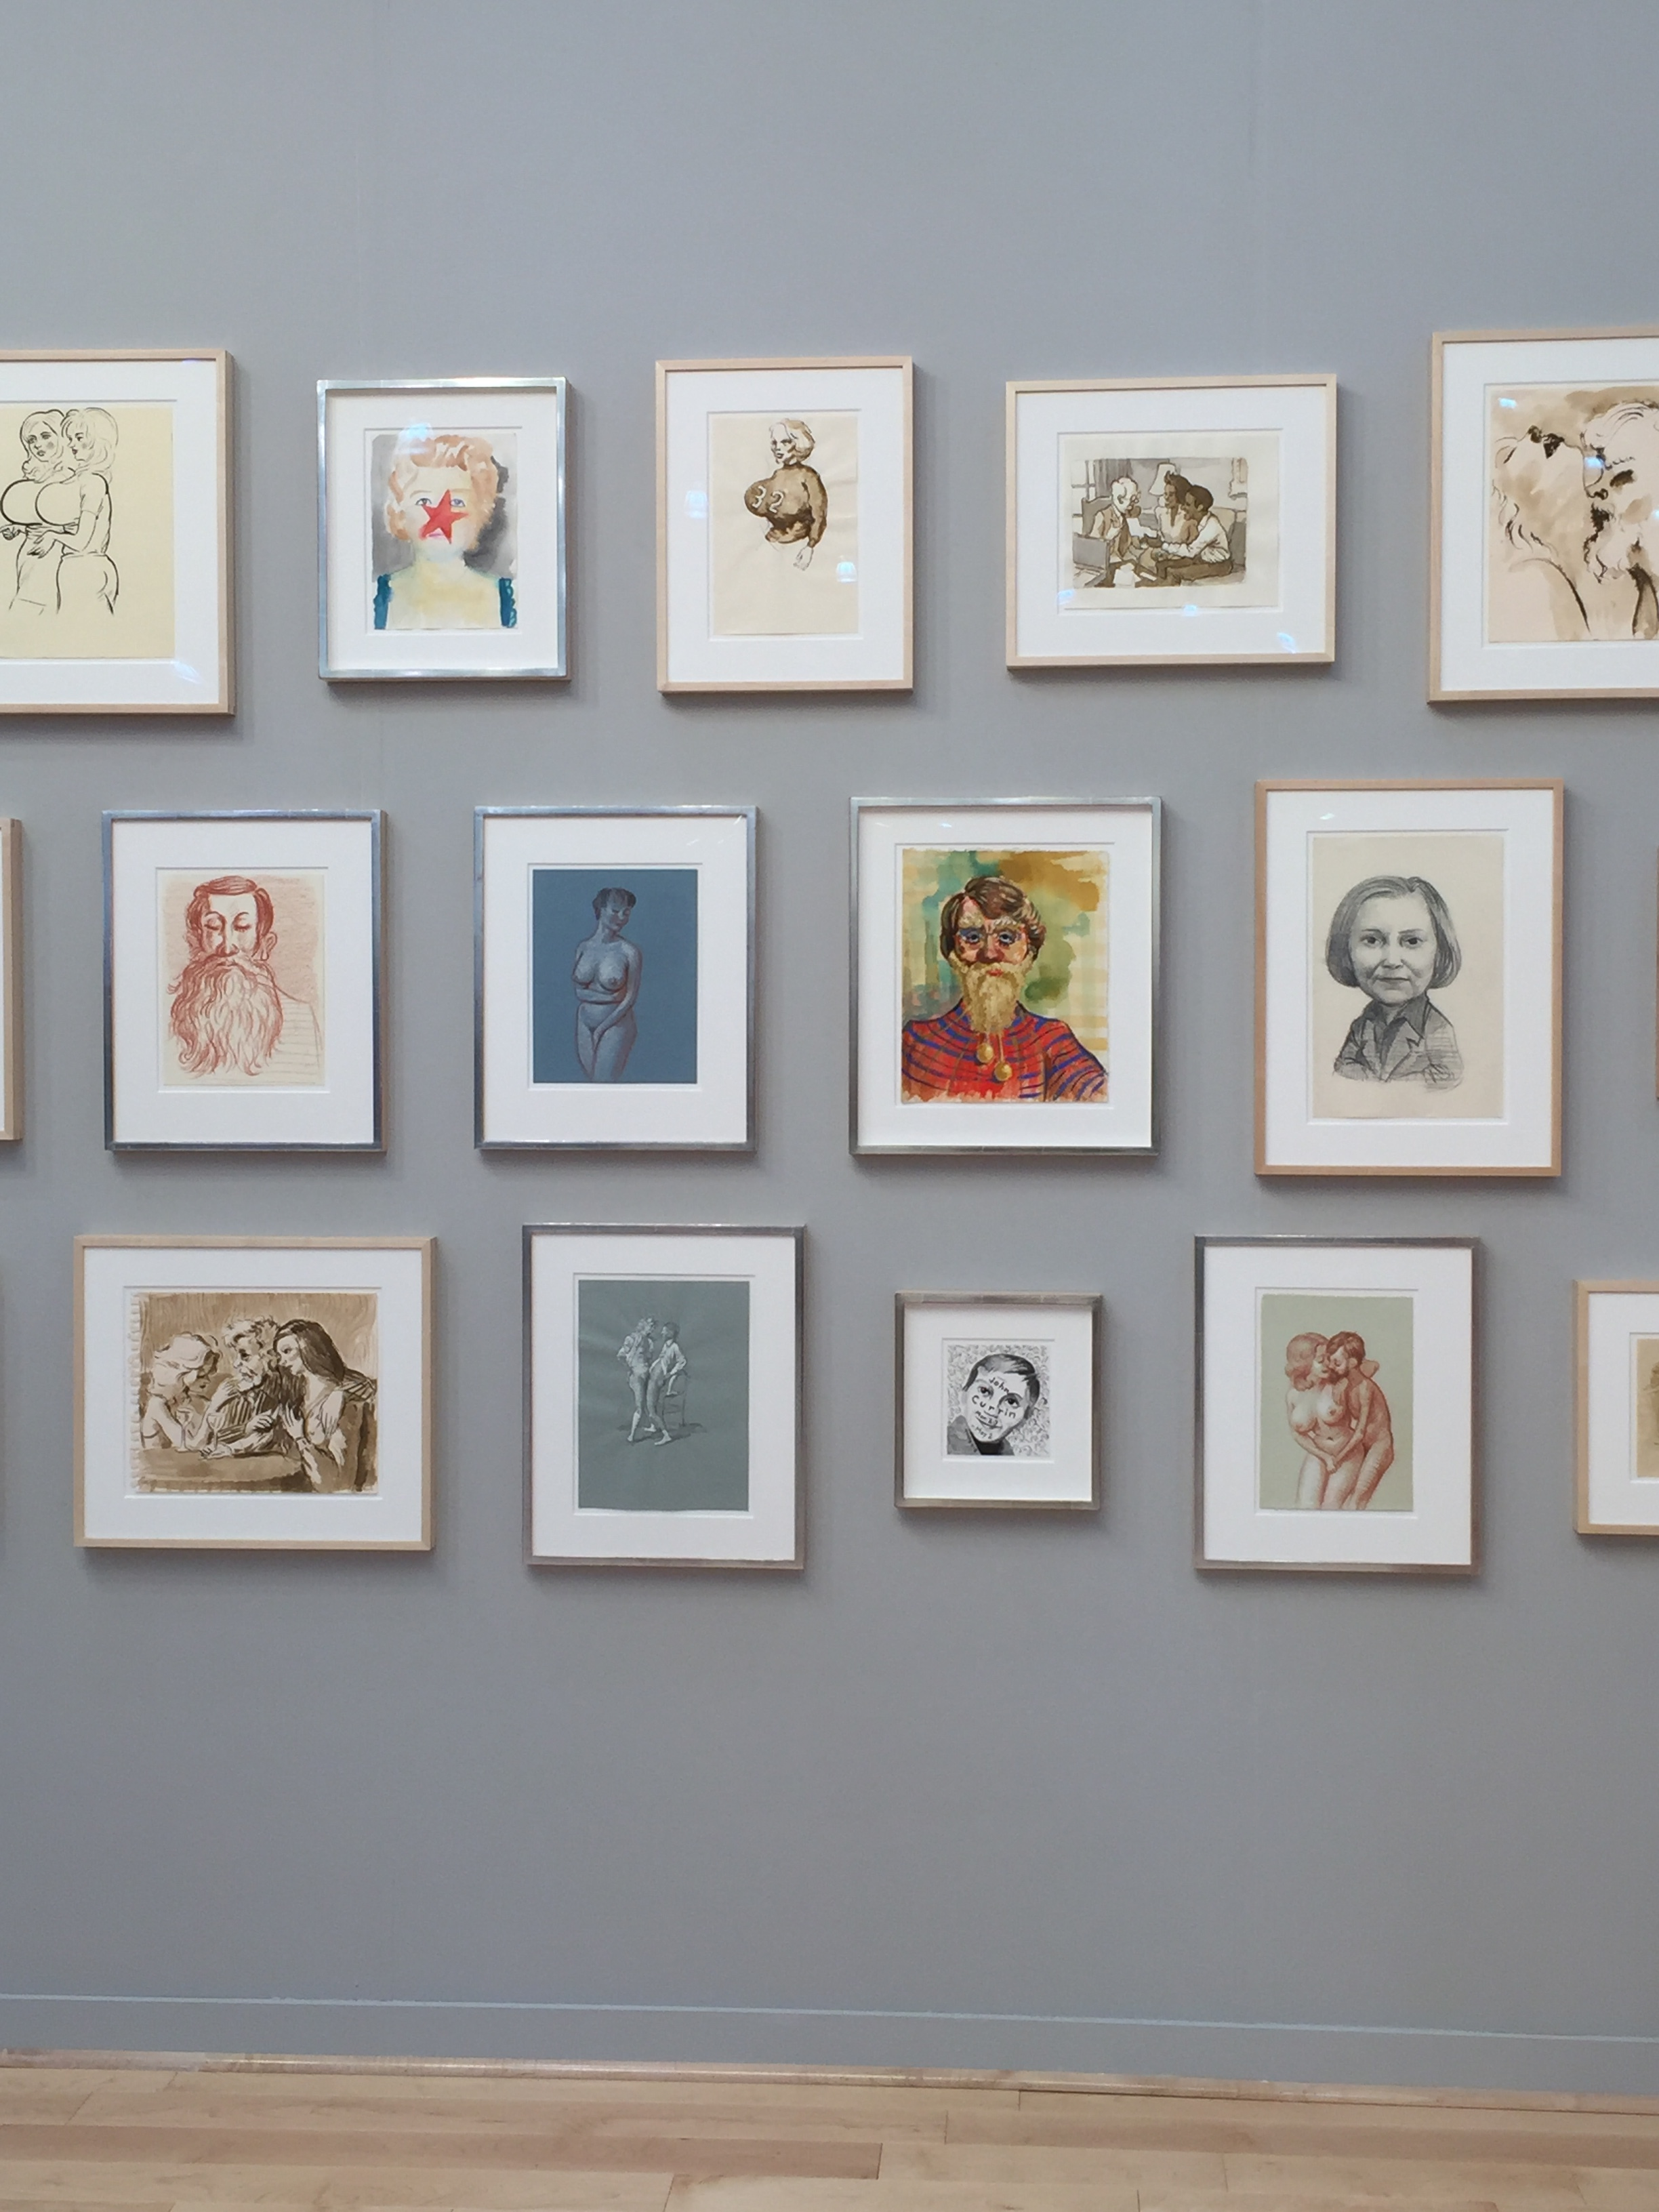 John Currin Salon Wall, Exhibited by Gagosian Gallery